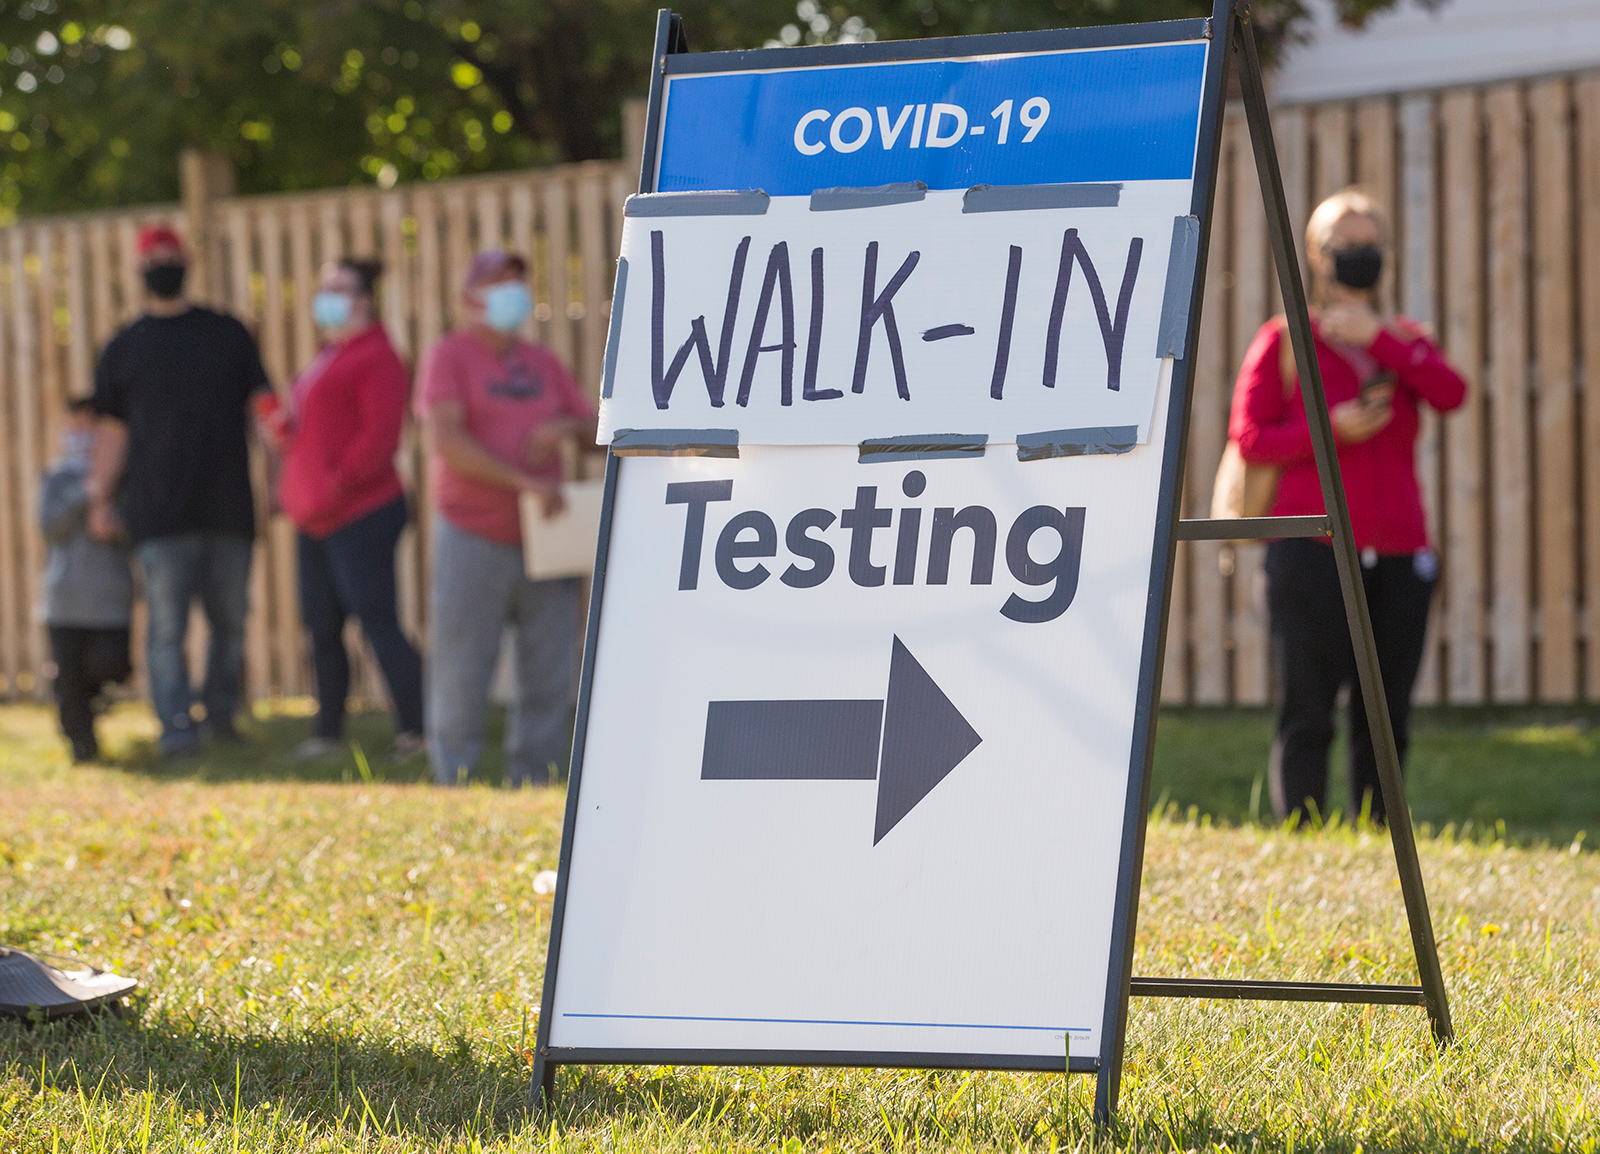 People wait in line for a Covid-19 test center in Brampton, Ontario, Canada, on September 21.